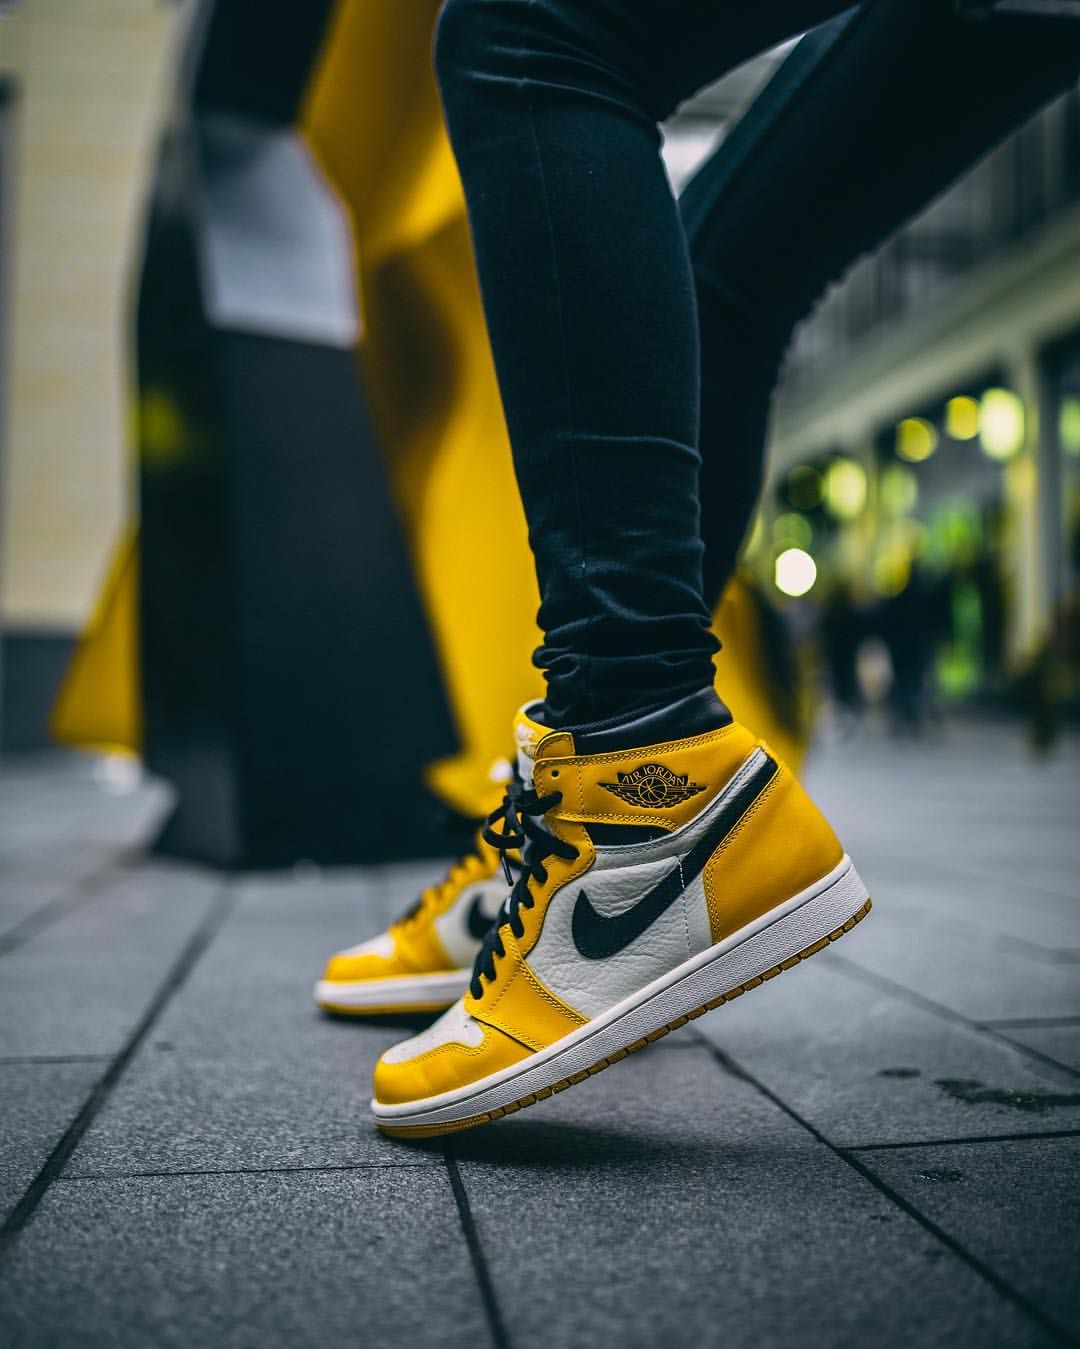 timeless design 4e761 1ccf6 Nike Air Jordan 1. Nike Air Jordan 1 Nike Jordans Women, Sneakers Nike  Jordan, Jordan Basketball Shoes,